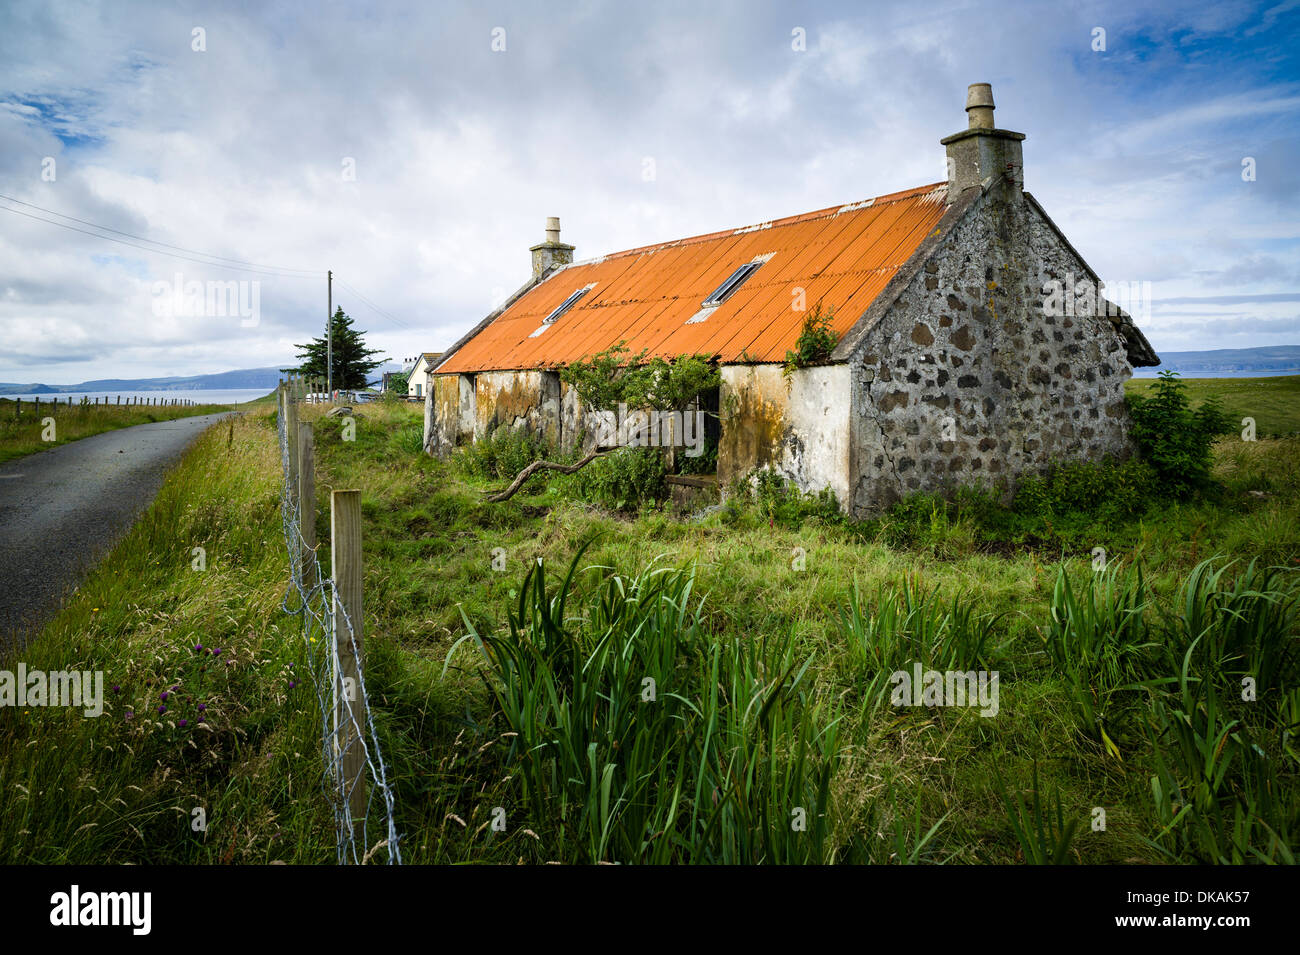 A Casualty Of Time An Abandoned Old Scottish Croft